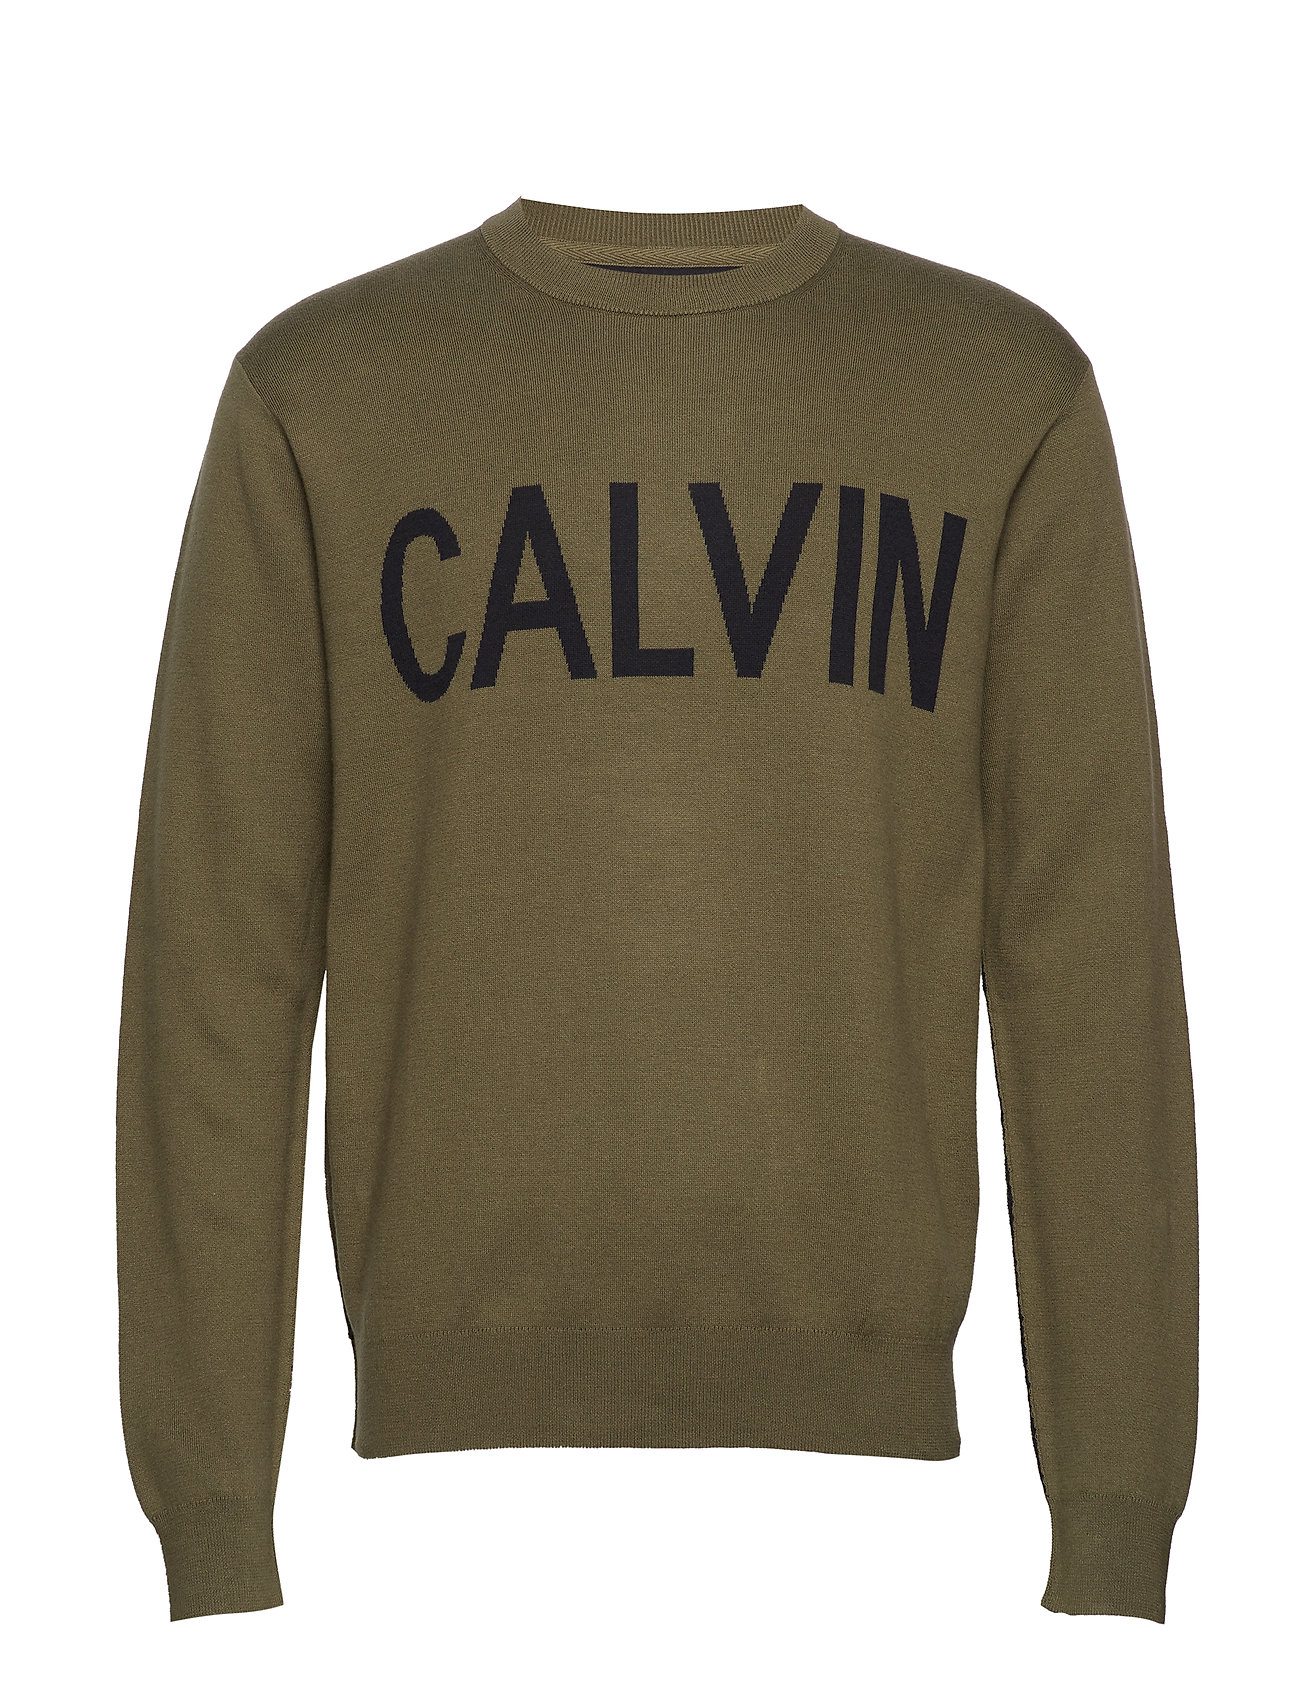 Calvin Klein Jeans CALVIN CN SWEATER - GRAPE LEAF / BLACK